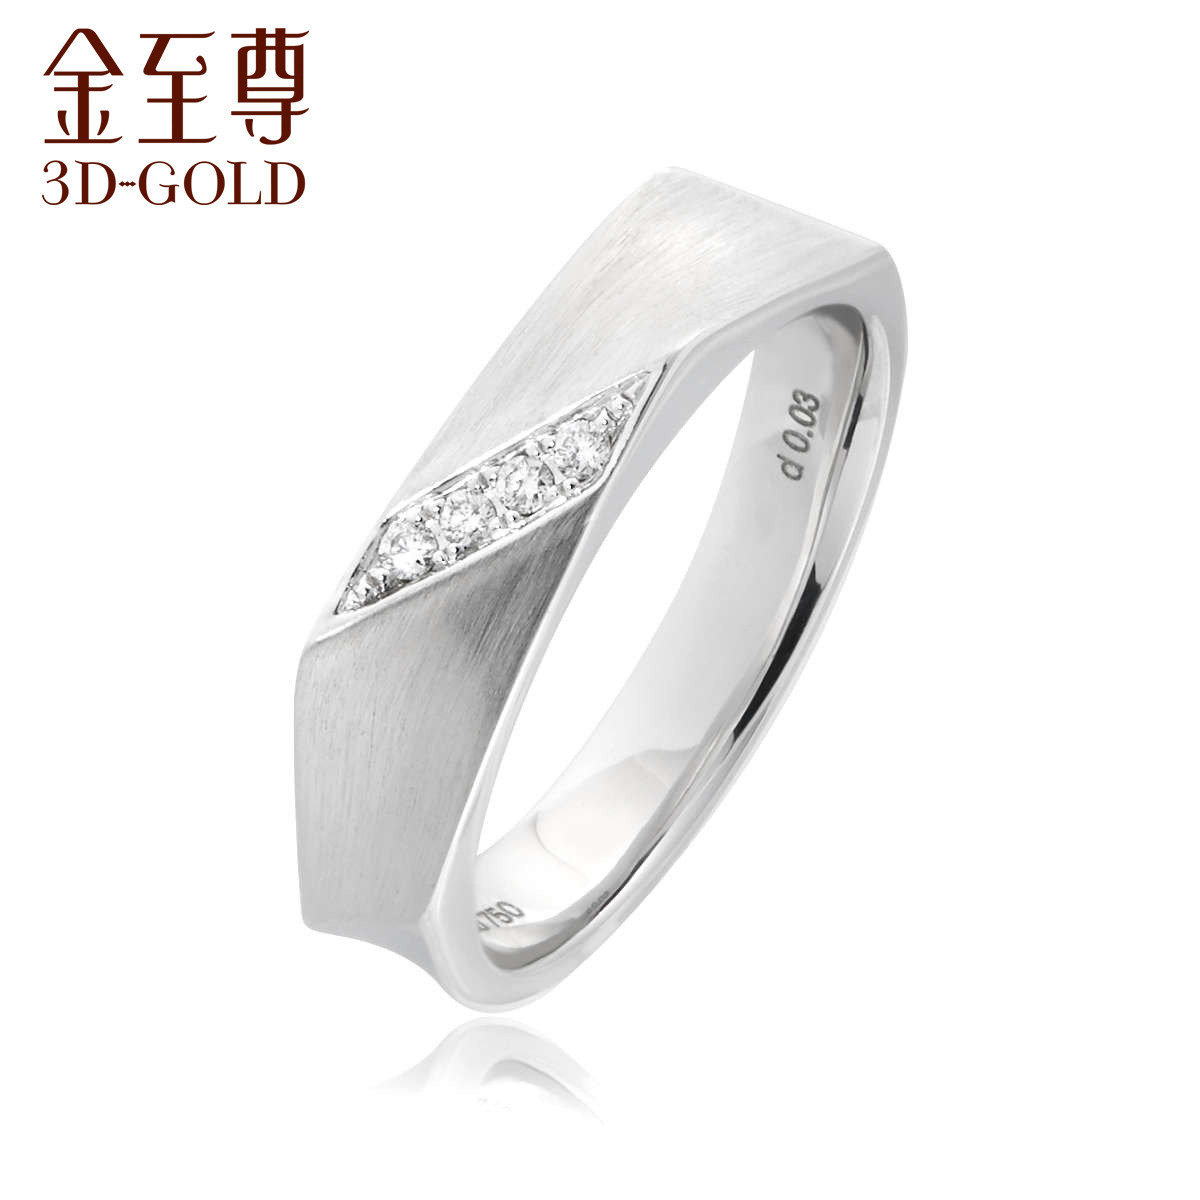 18K White Gold Lovers' Diamond Ring